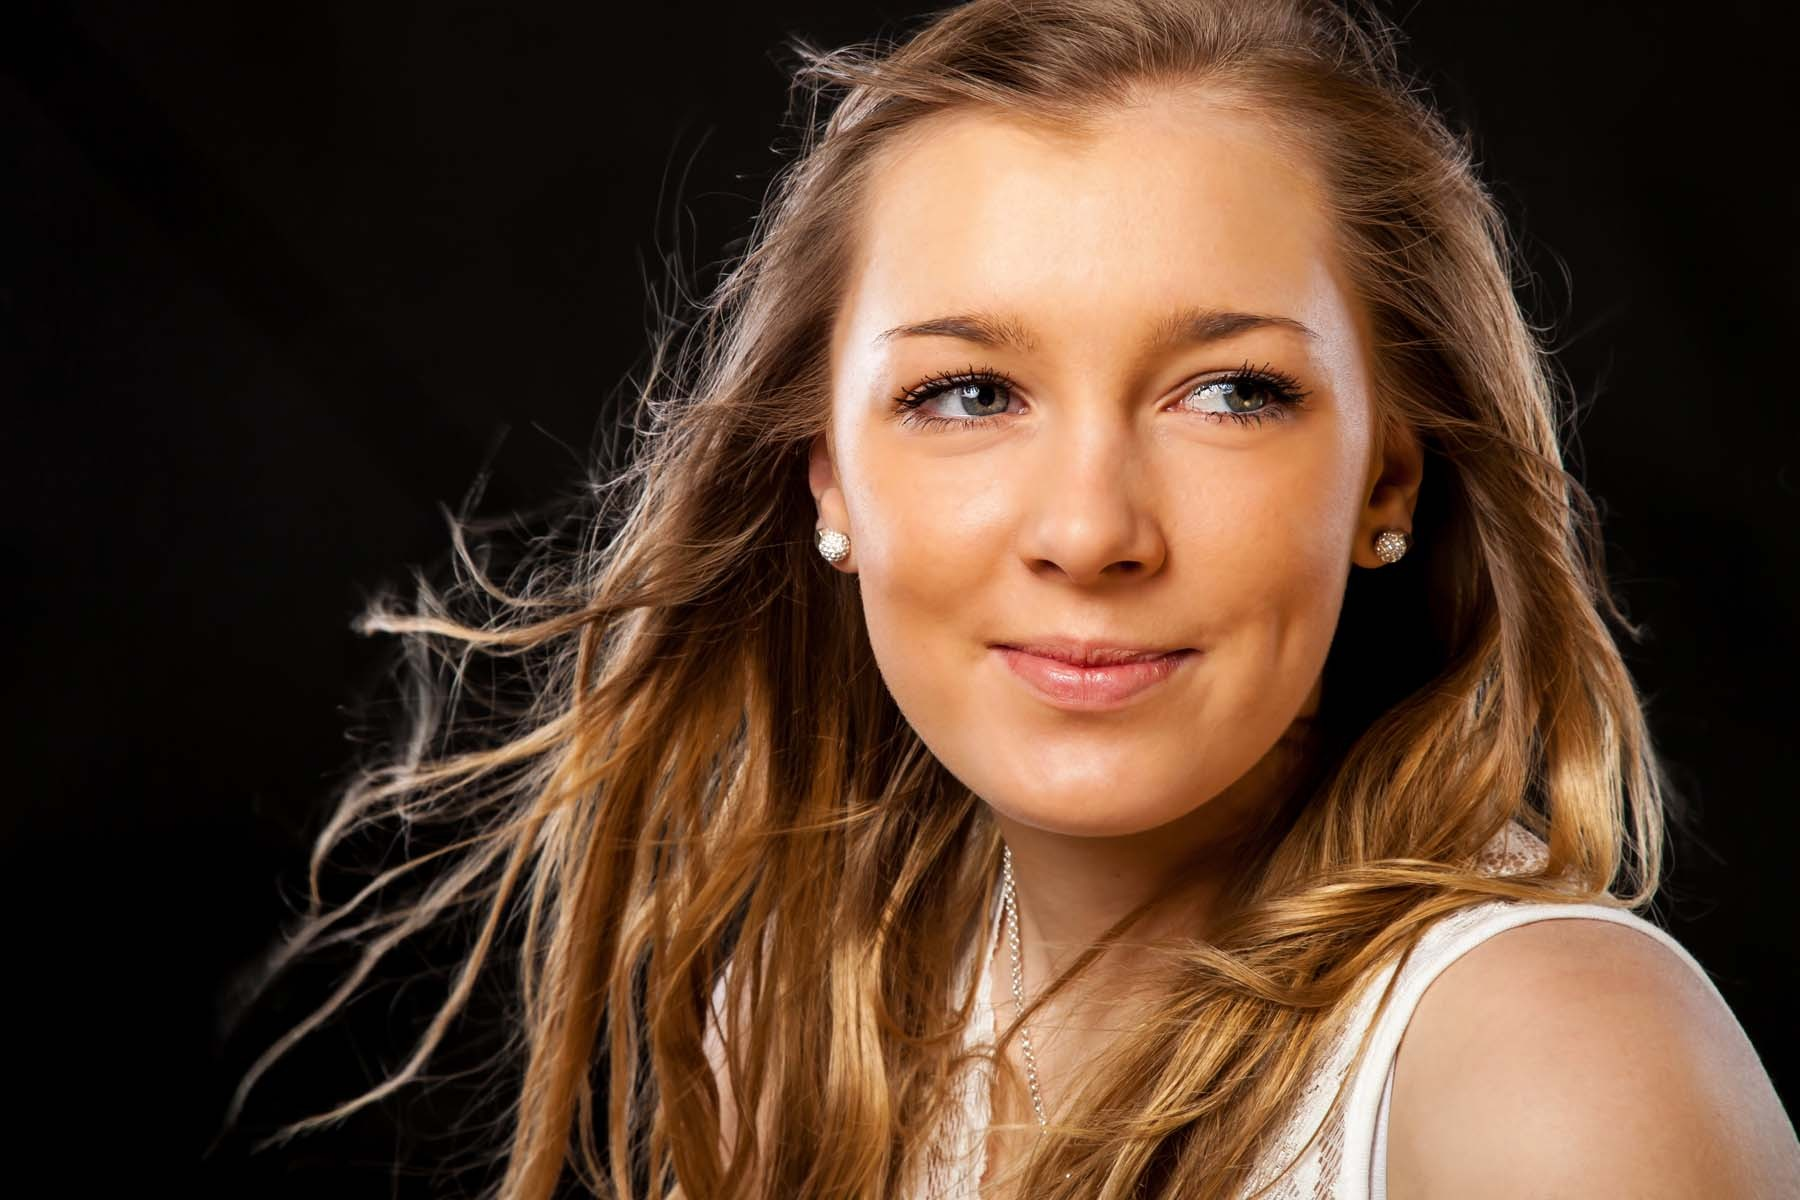 Headshot Photographer in Sussex & Surrey - East Grinstead & Crawley (4)